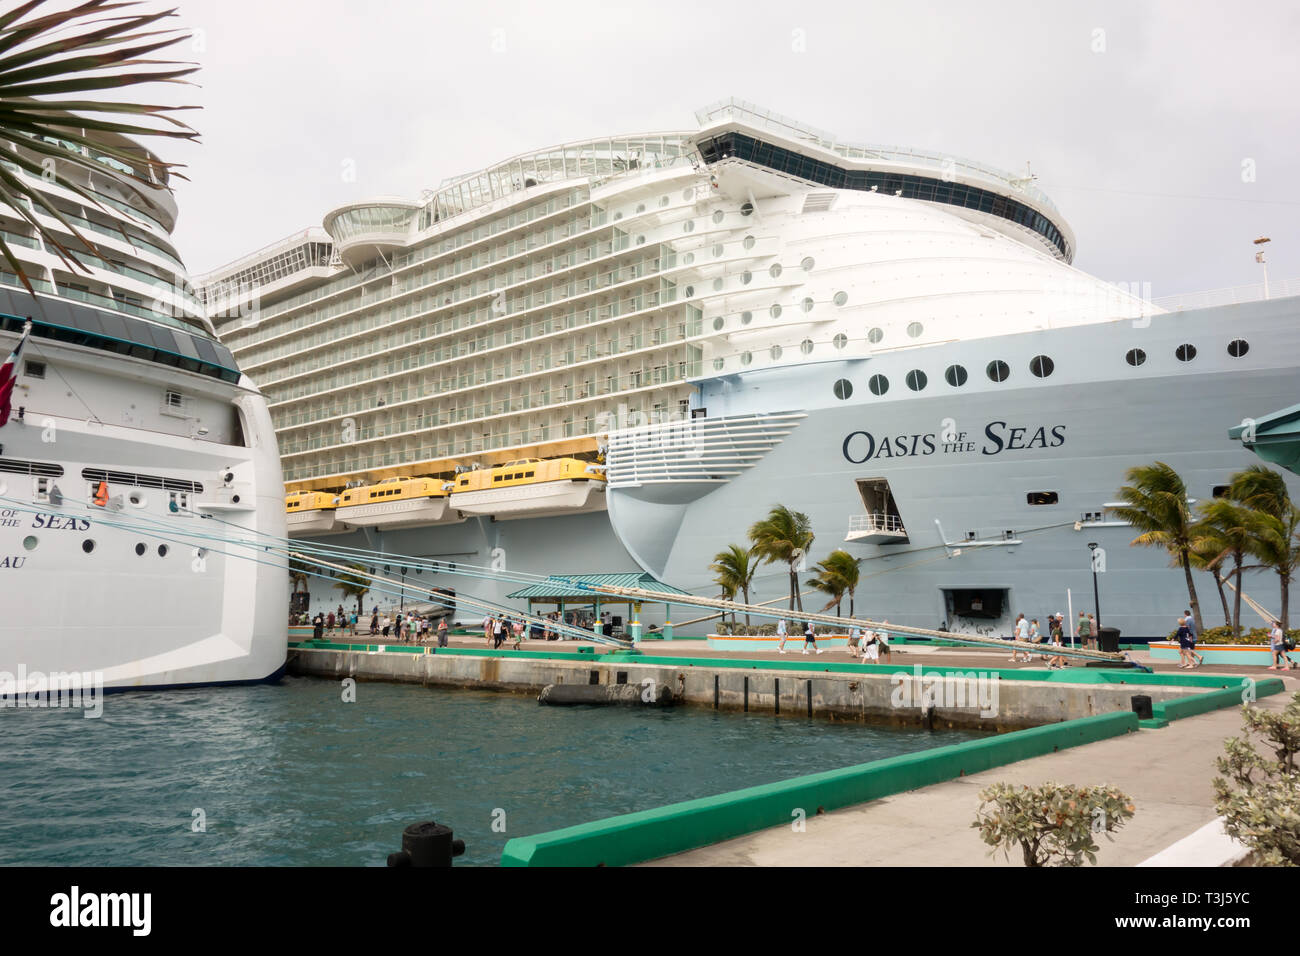 Oasis of the Seas owned by Royal Caribbean International is being docked at Nassau's cruise port terminal in Bahamas. - Stock Image